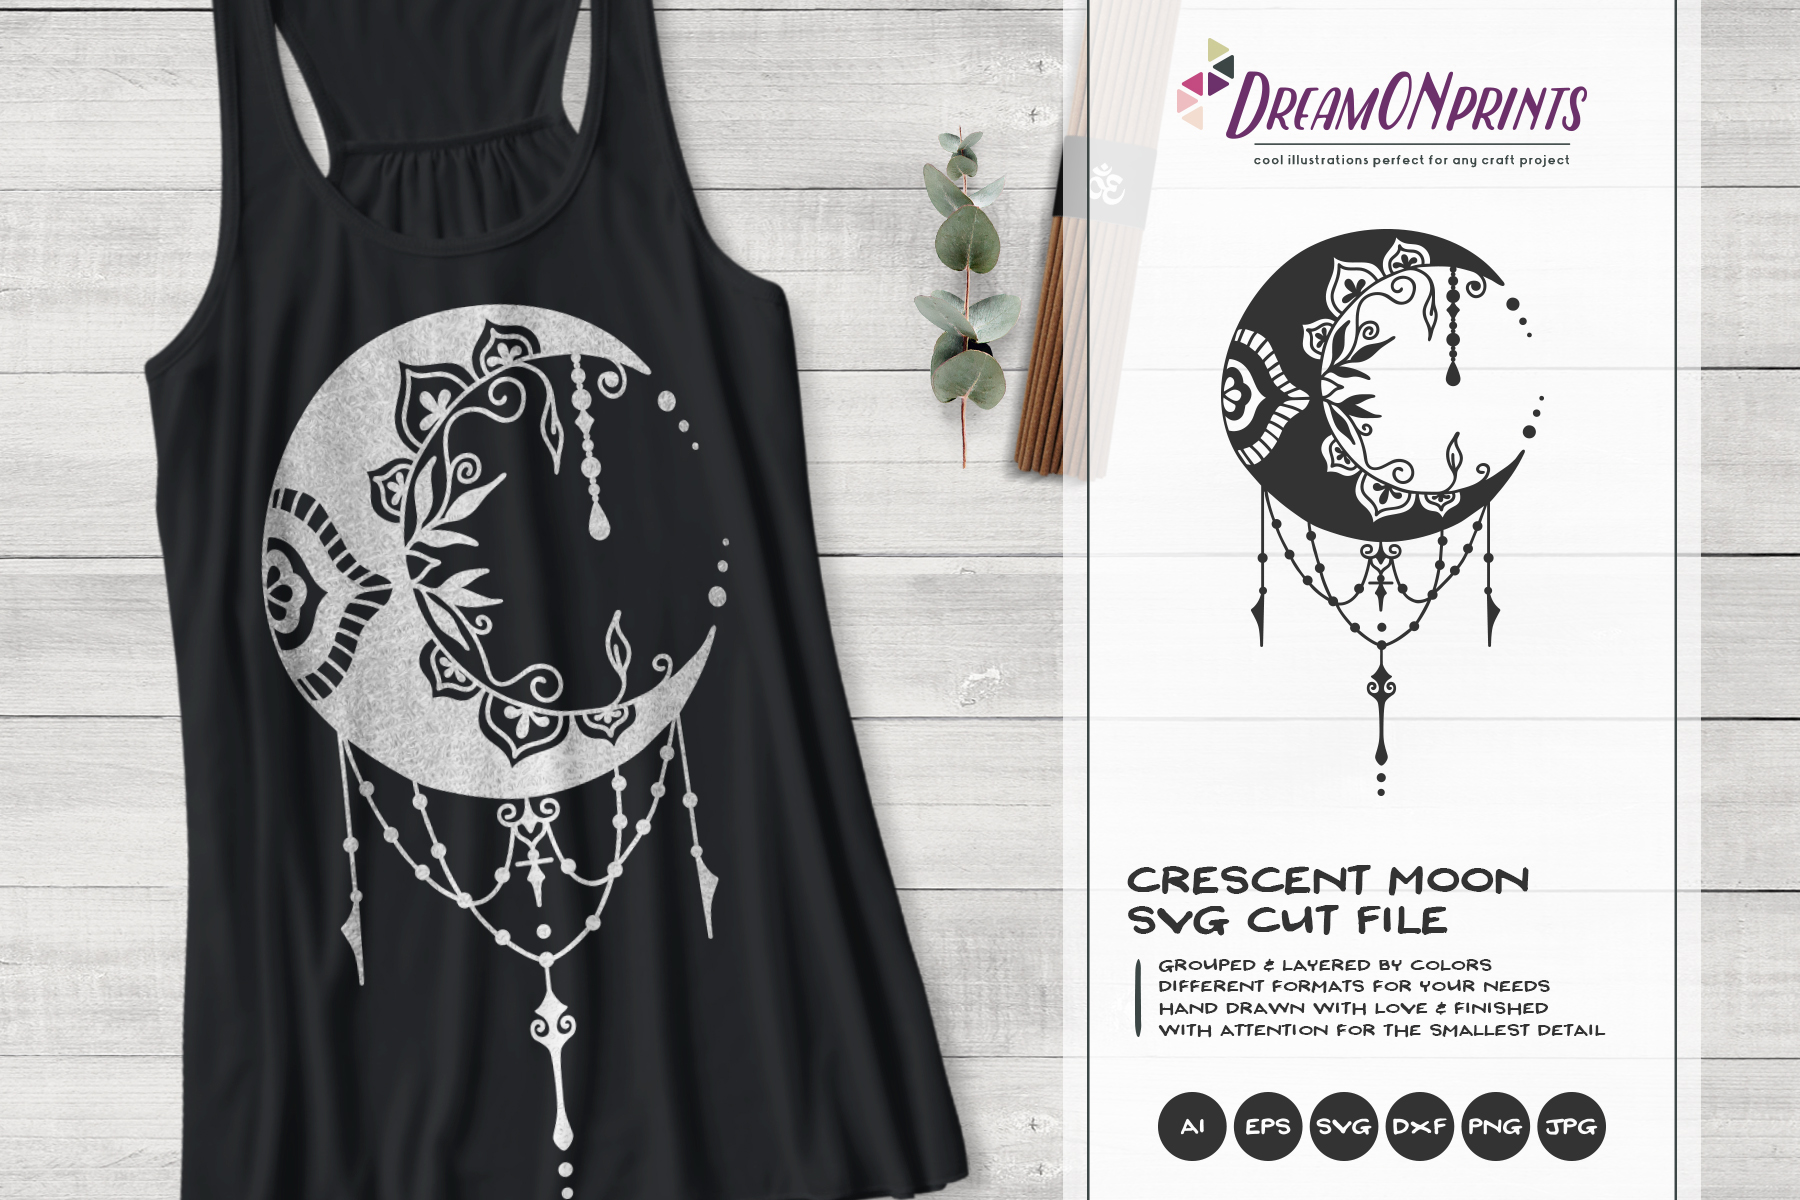 Crescent Moon SVG | Halloween SVG Cut File example image 1